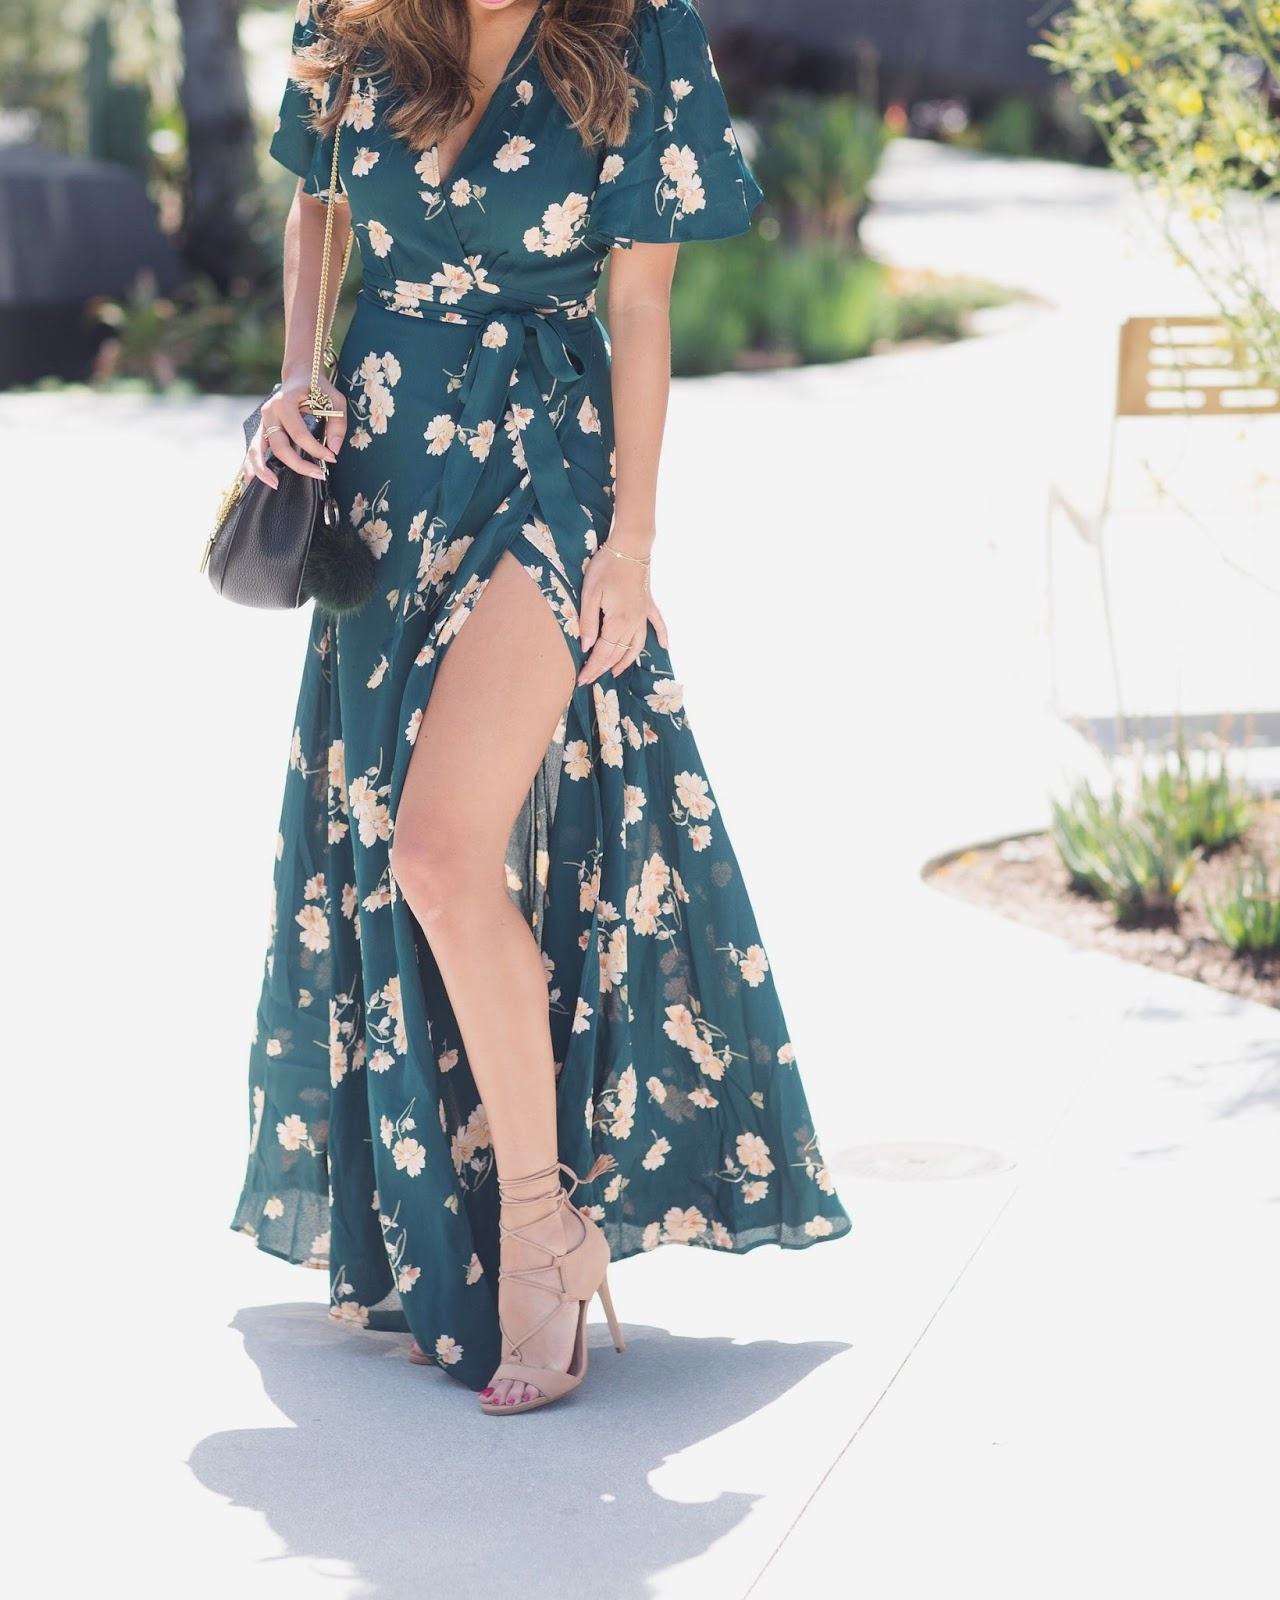 how to wear maxi dress petite frame, wrap maxi dress for wedding,